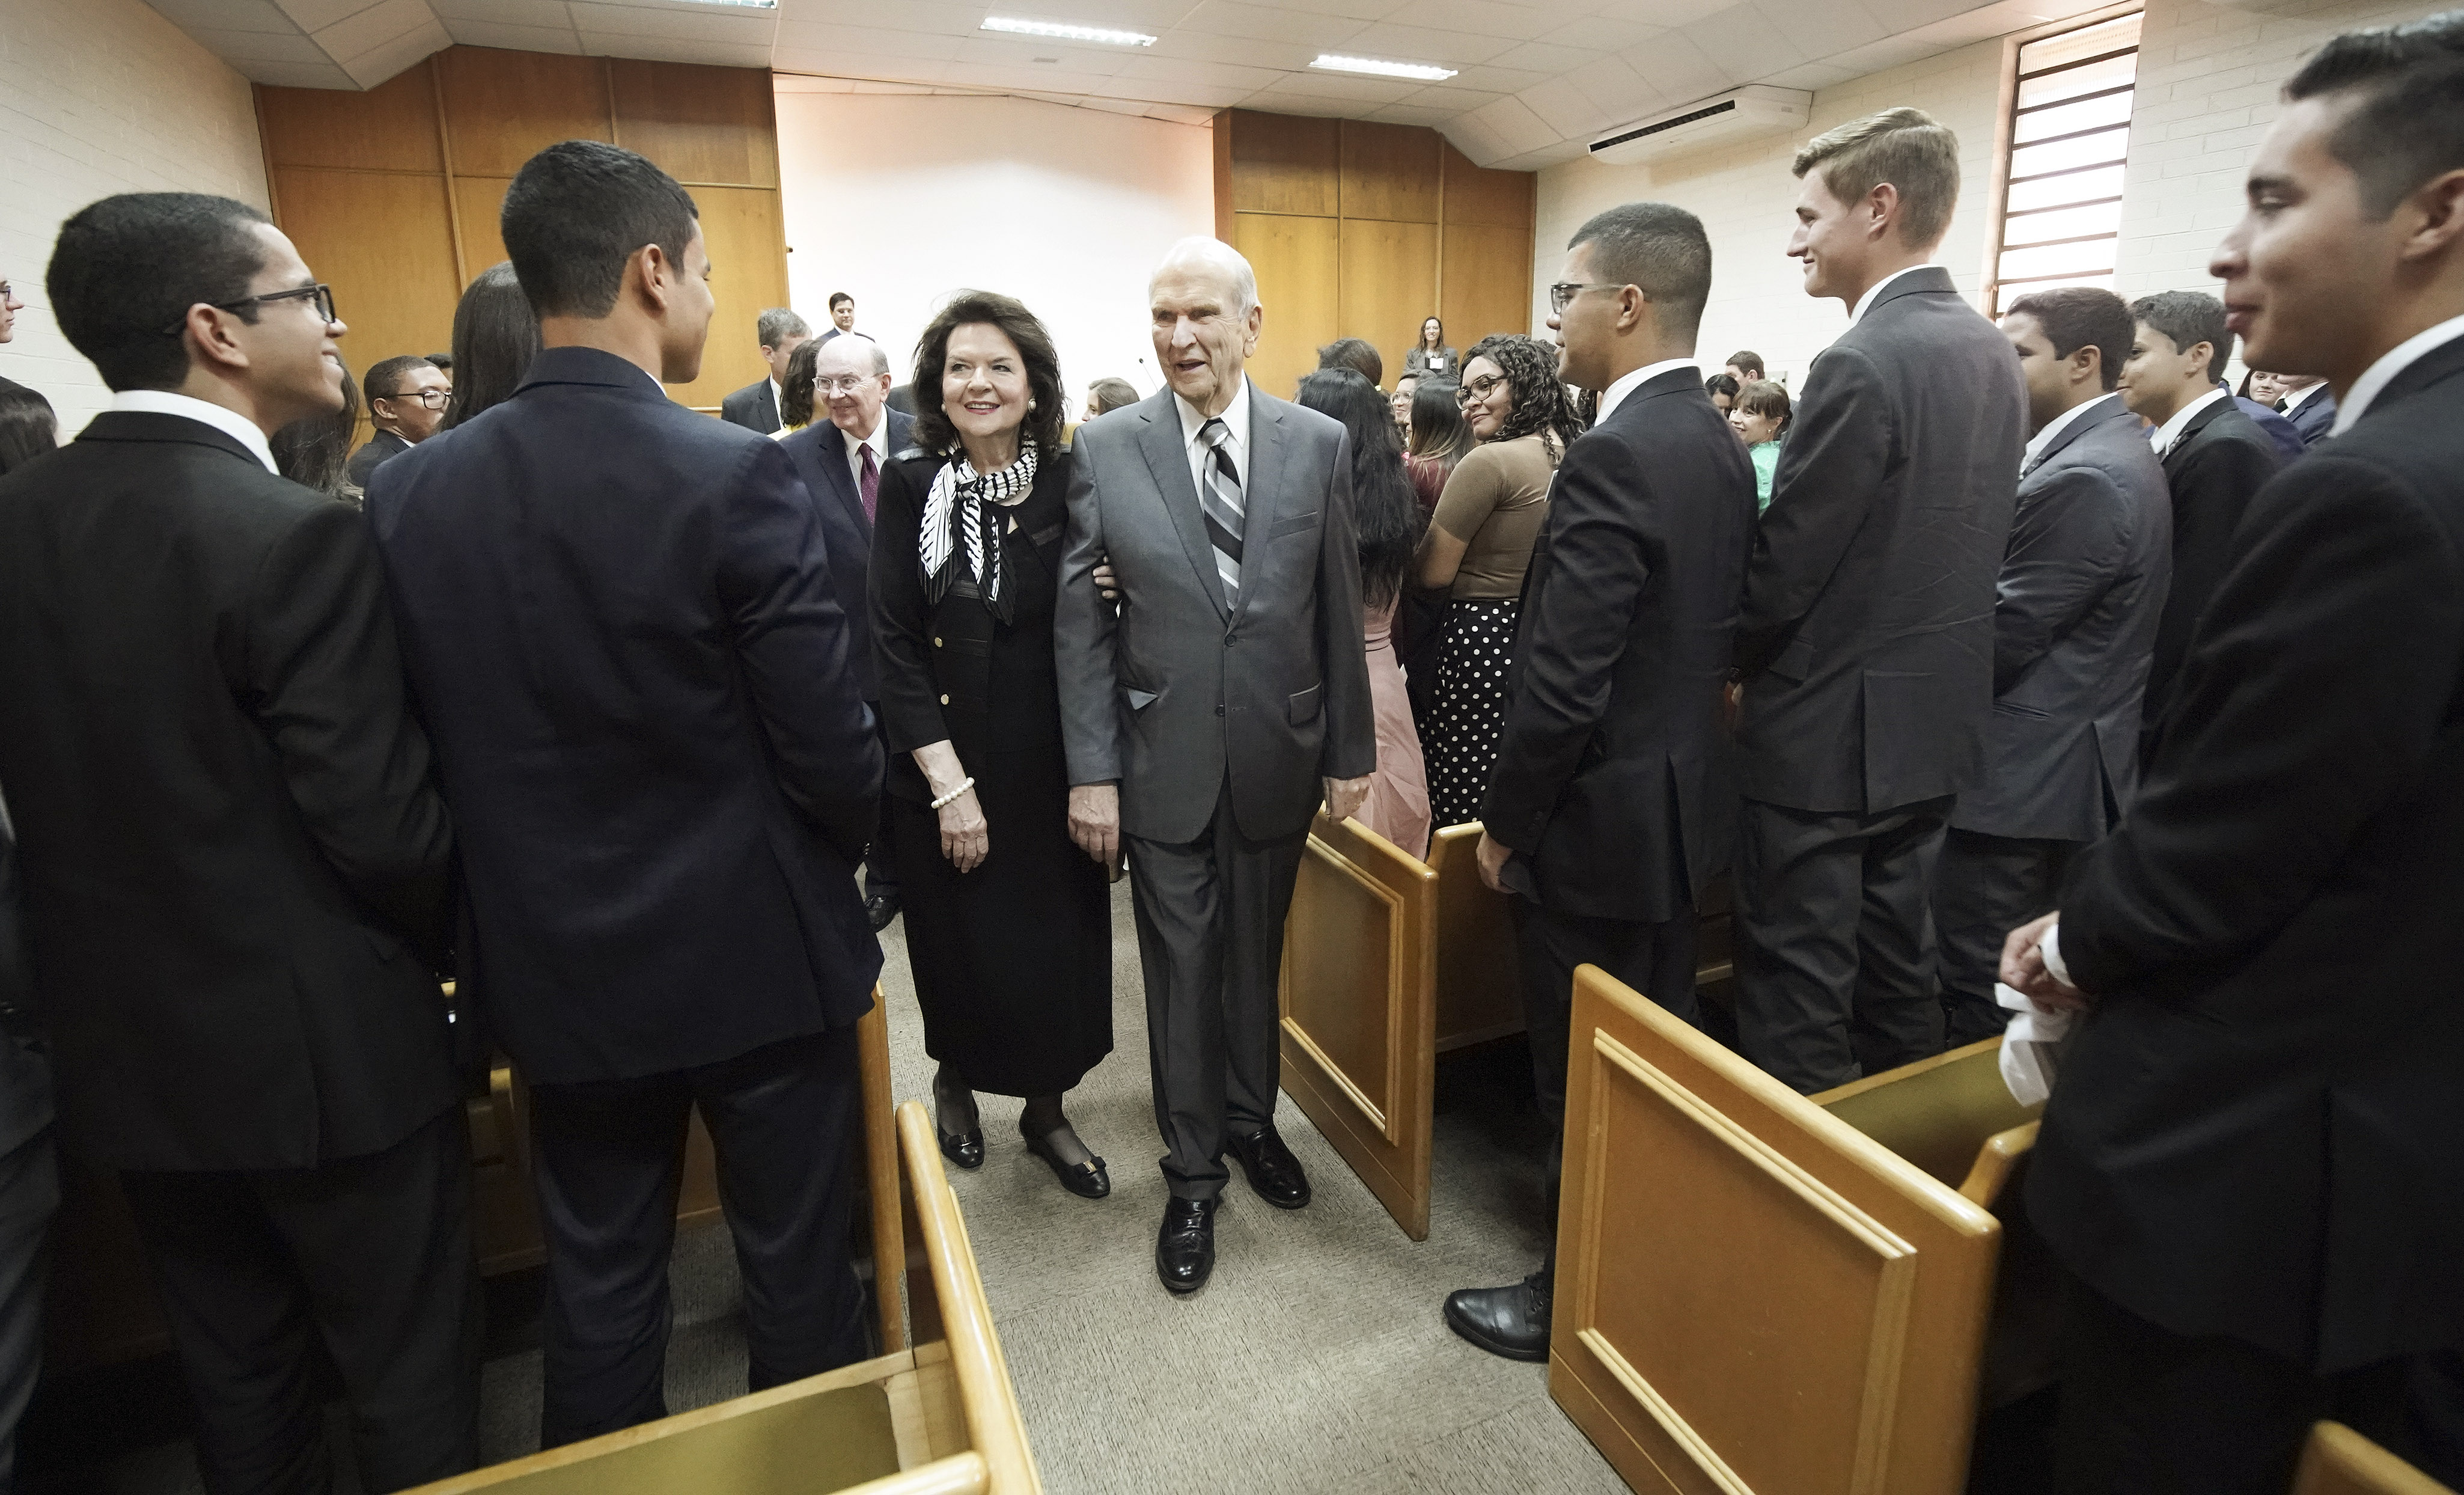 President Russell M. Nelson of The Church of Jesus Christ of Latter-day Saints and his wife, Sister Wendy Nelson, walk through a group of missionaries after speaking during a Brazil Brasilia Mission meeting in Brasilia, Brazil, on Friday, Aug. 30, 2019.